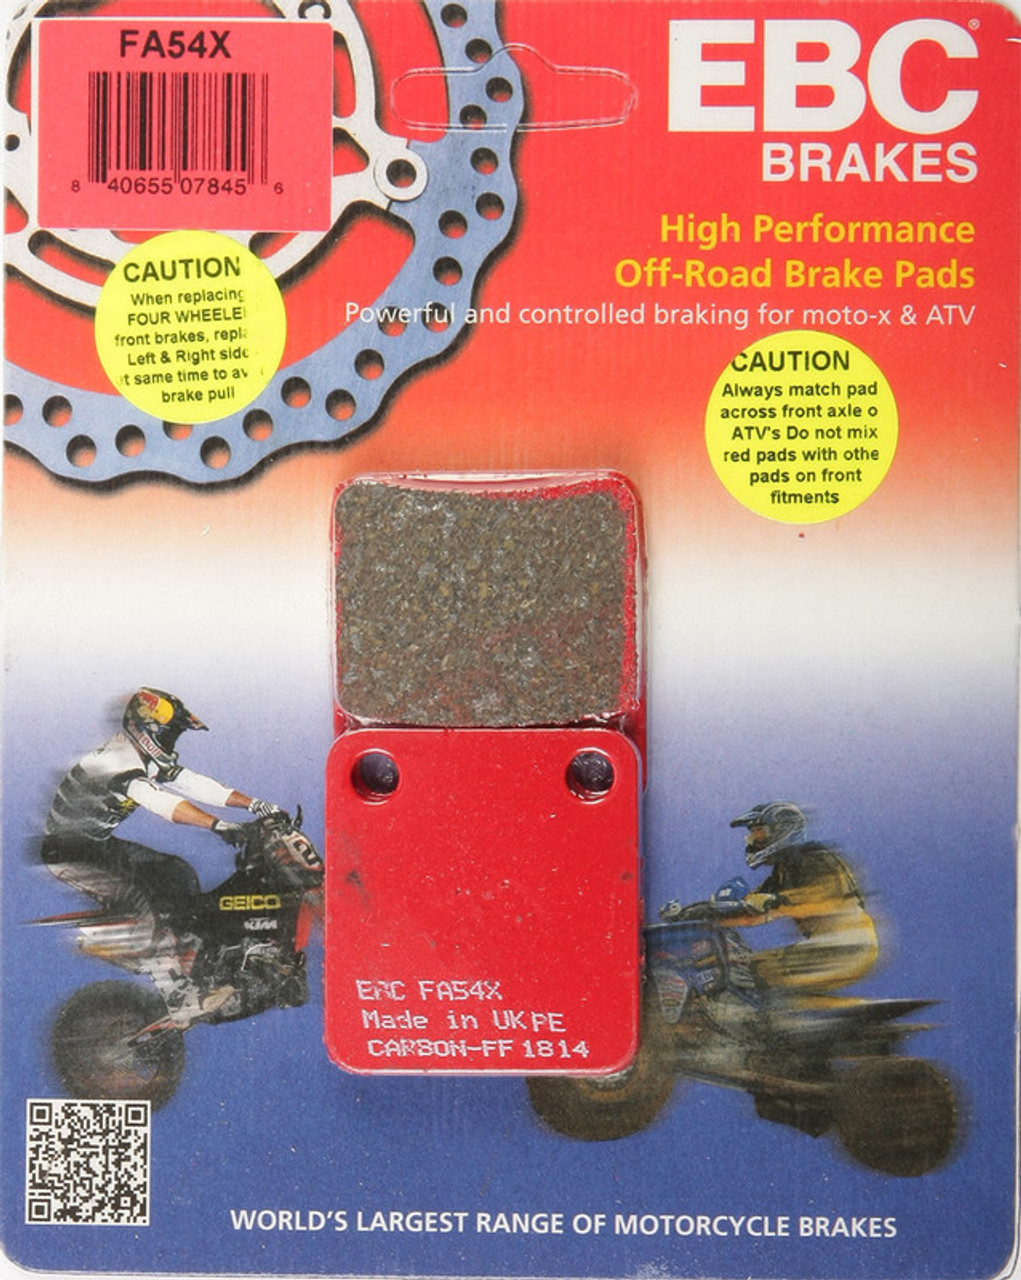 Ebc Brake Pads >> Ebc Brake Pads Fa54x Speed Addicts